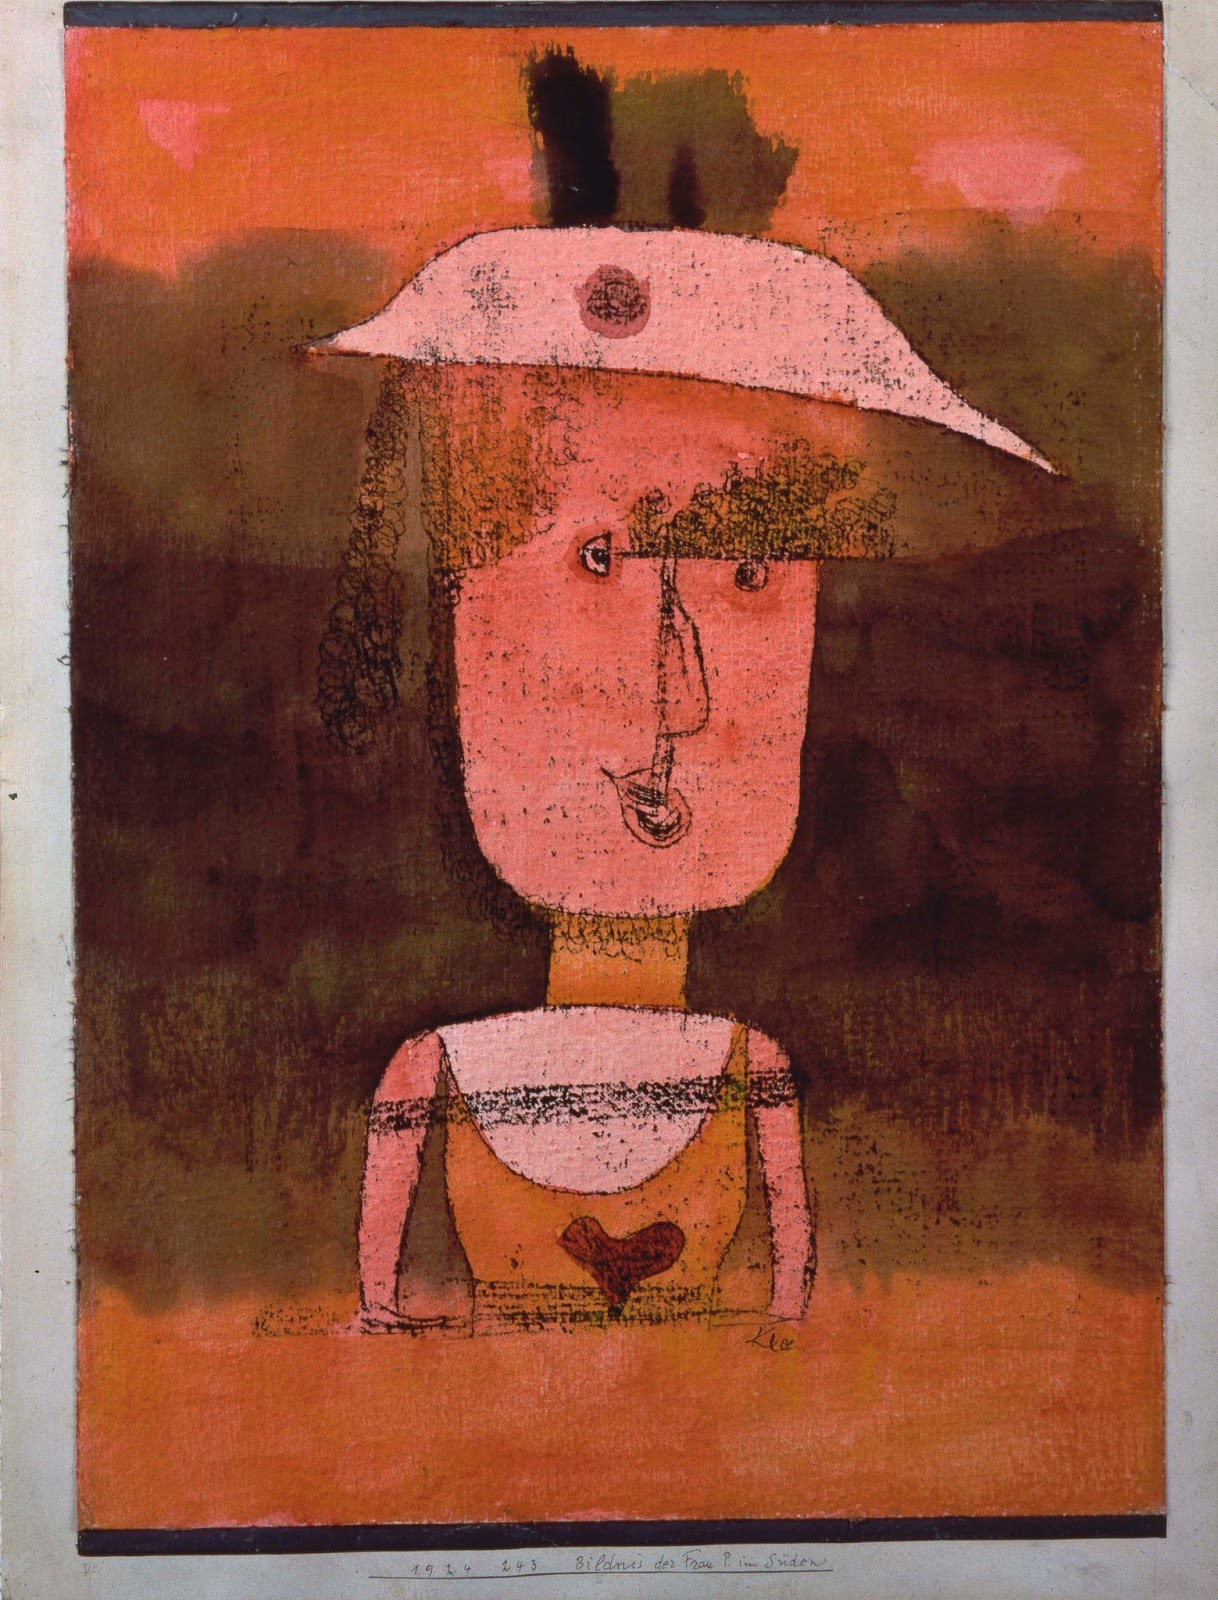 Portrait of Mrs. P in the South , Paul Klee, 1924. Peggy Guggenheim Collection, Venice.